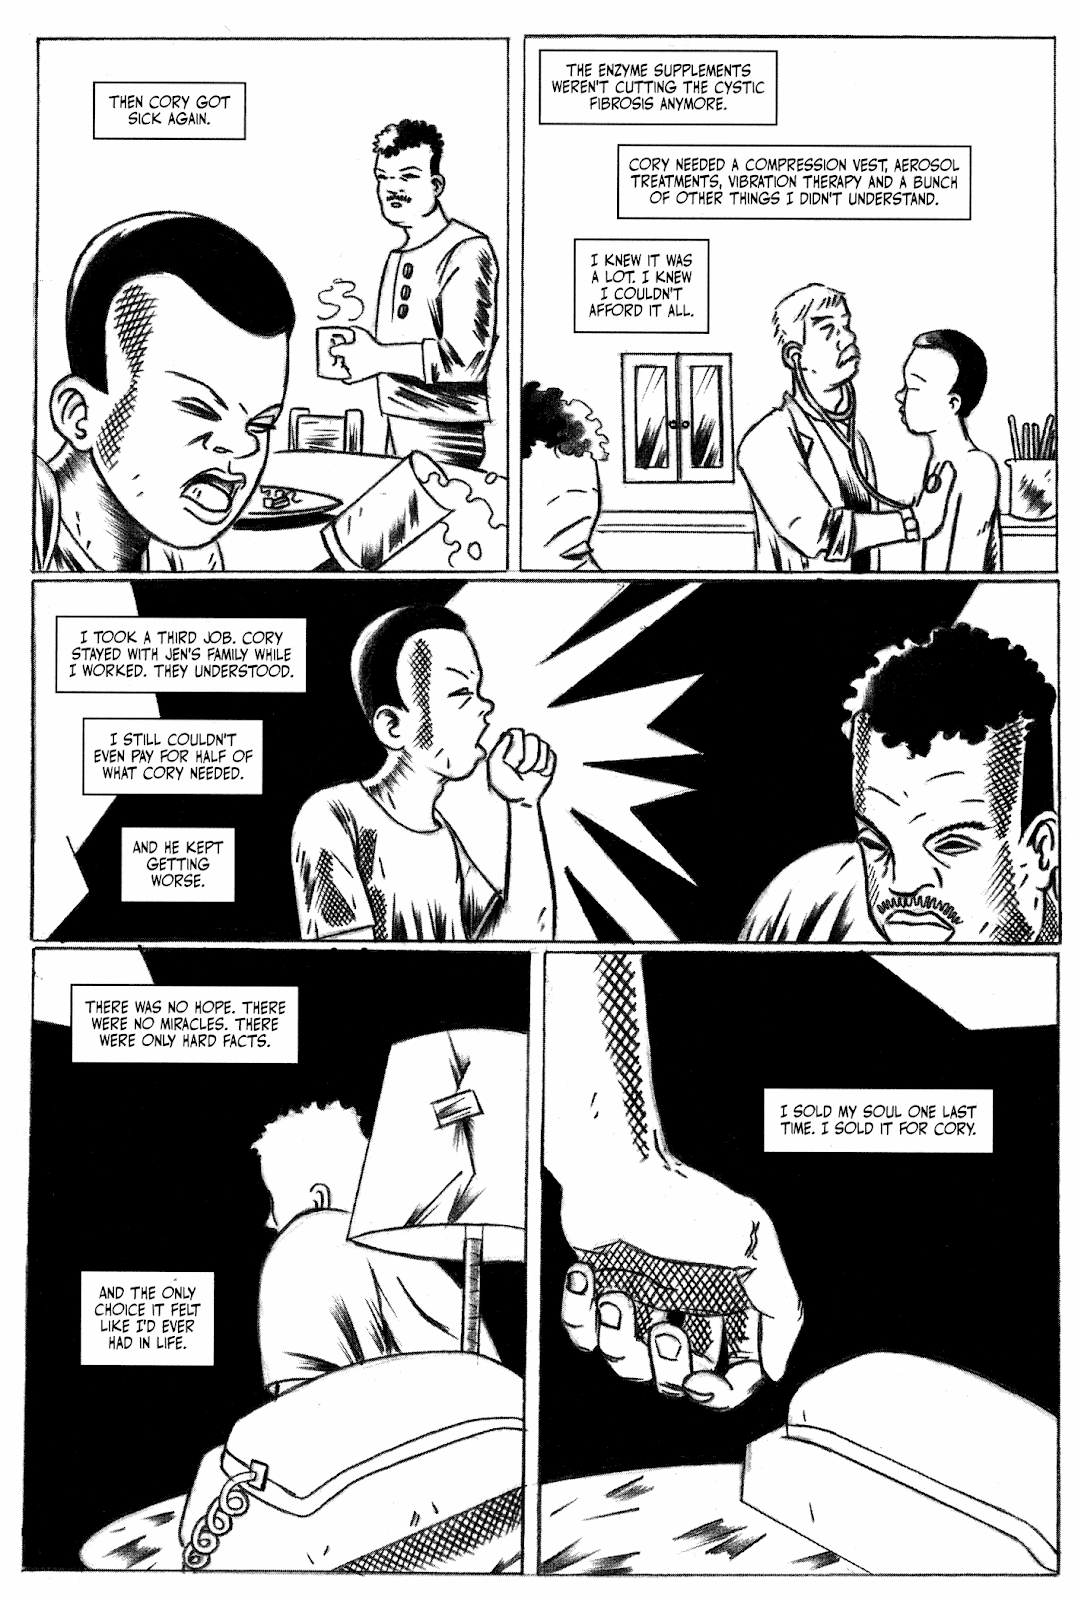 Read online Hench comic -  Issue # TPB - 59